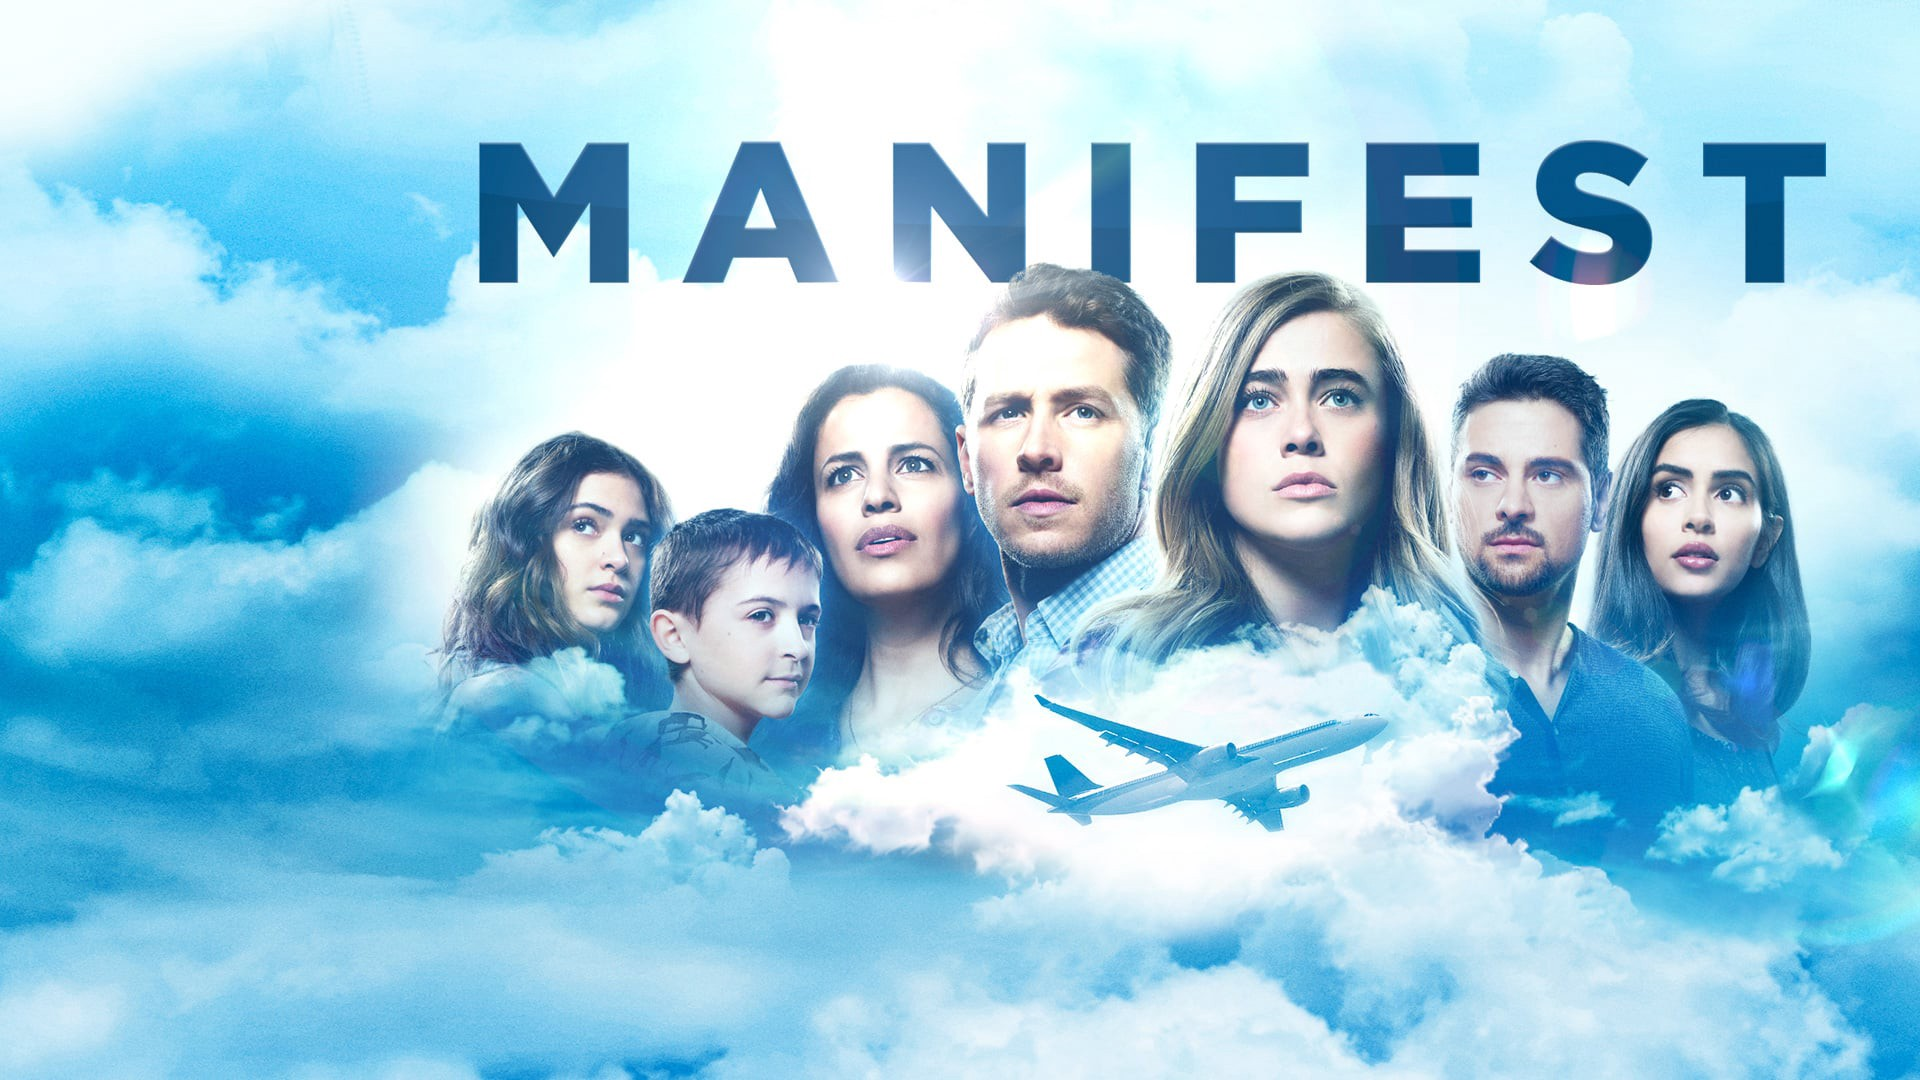 Manifest Season 3 update, Cast, Plot and All You Need To Know